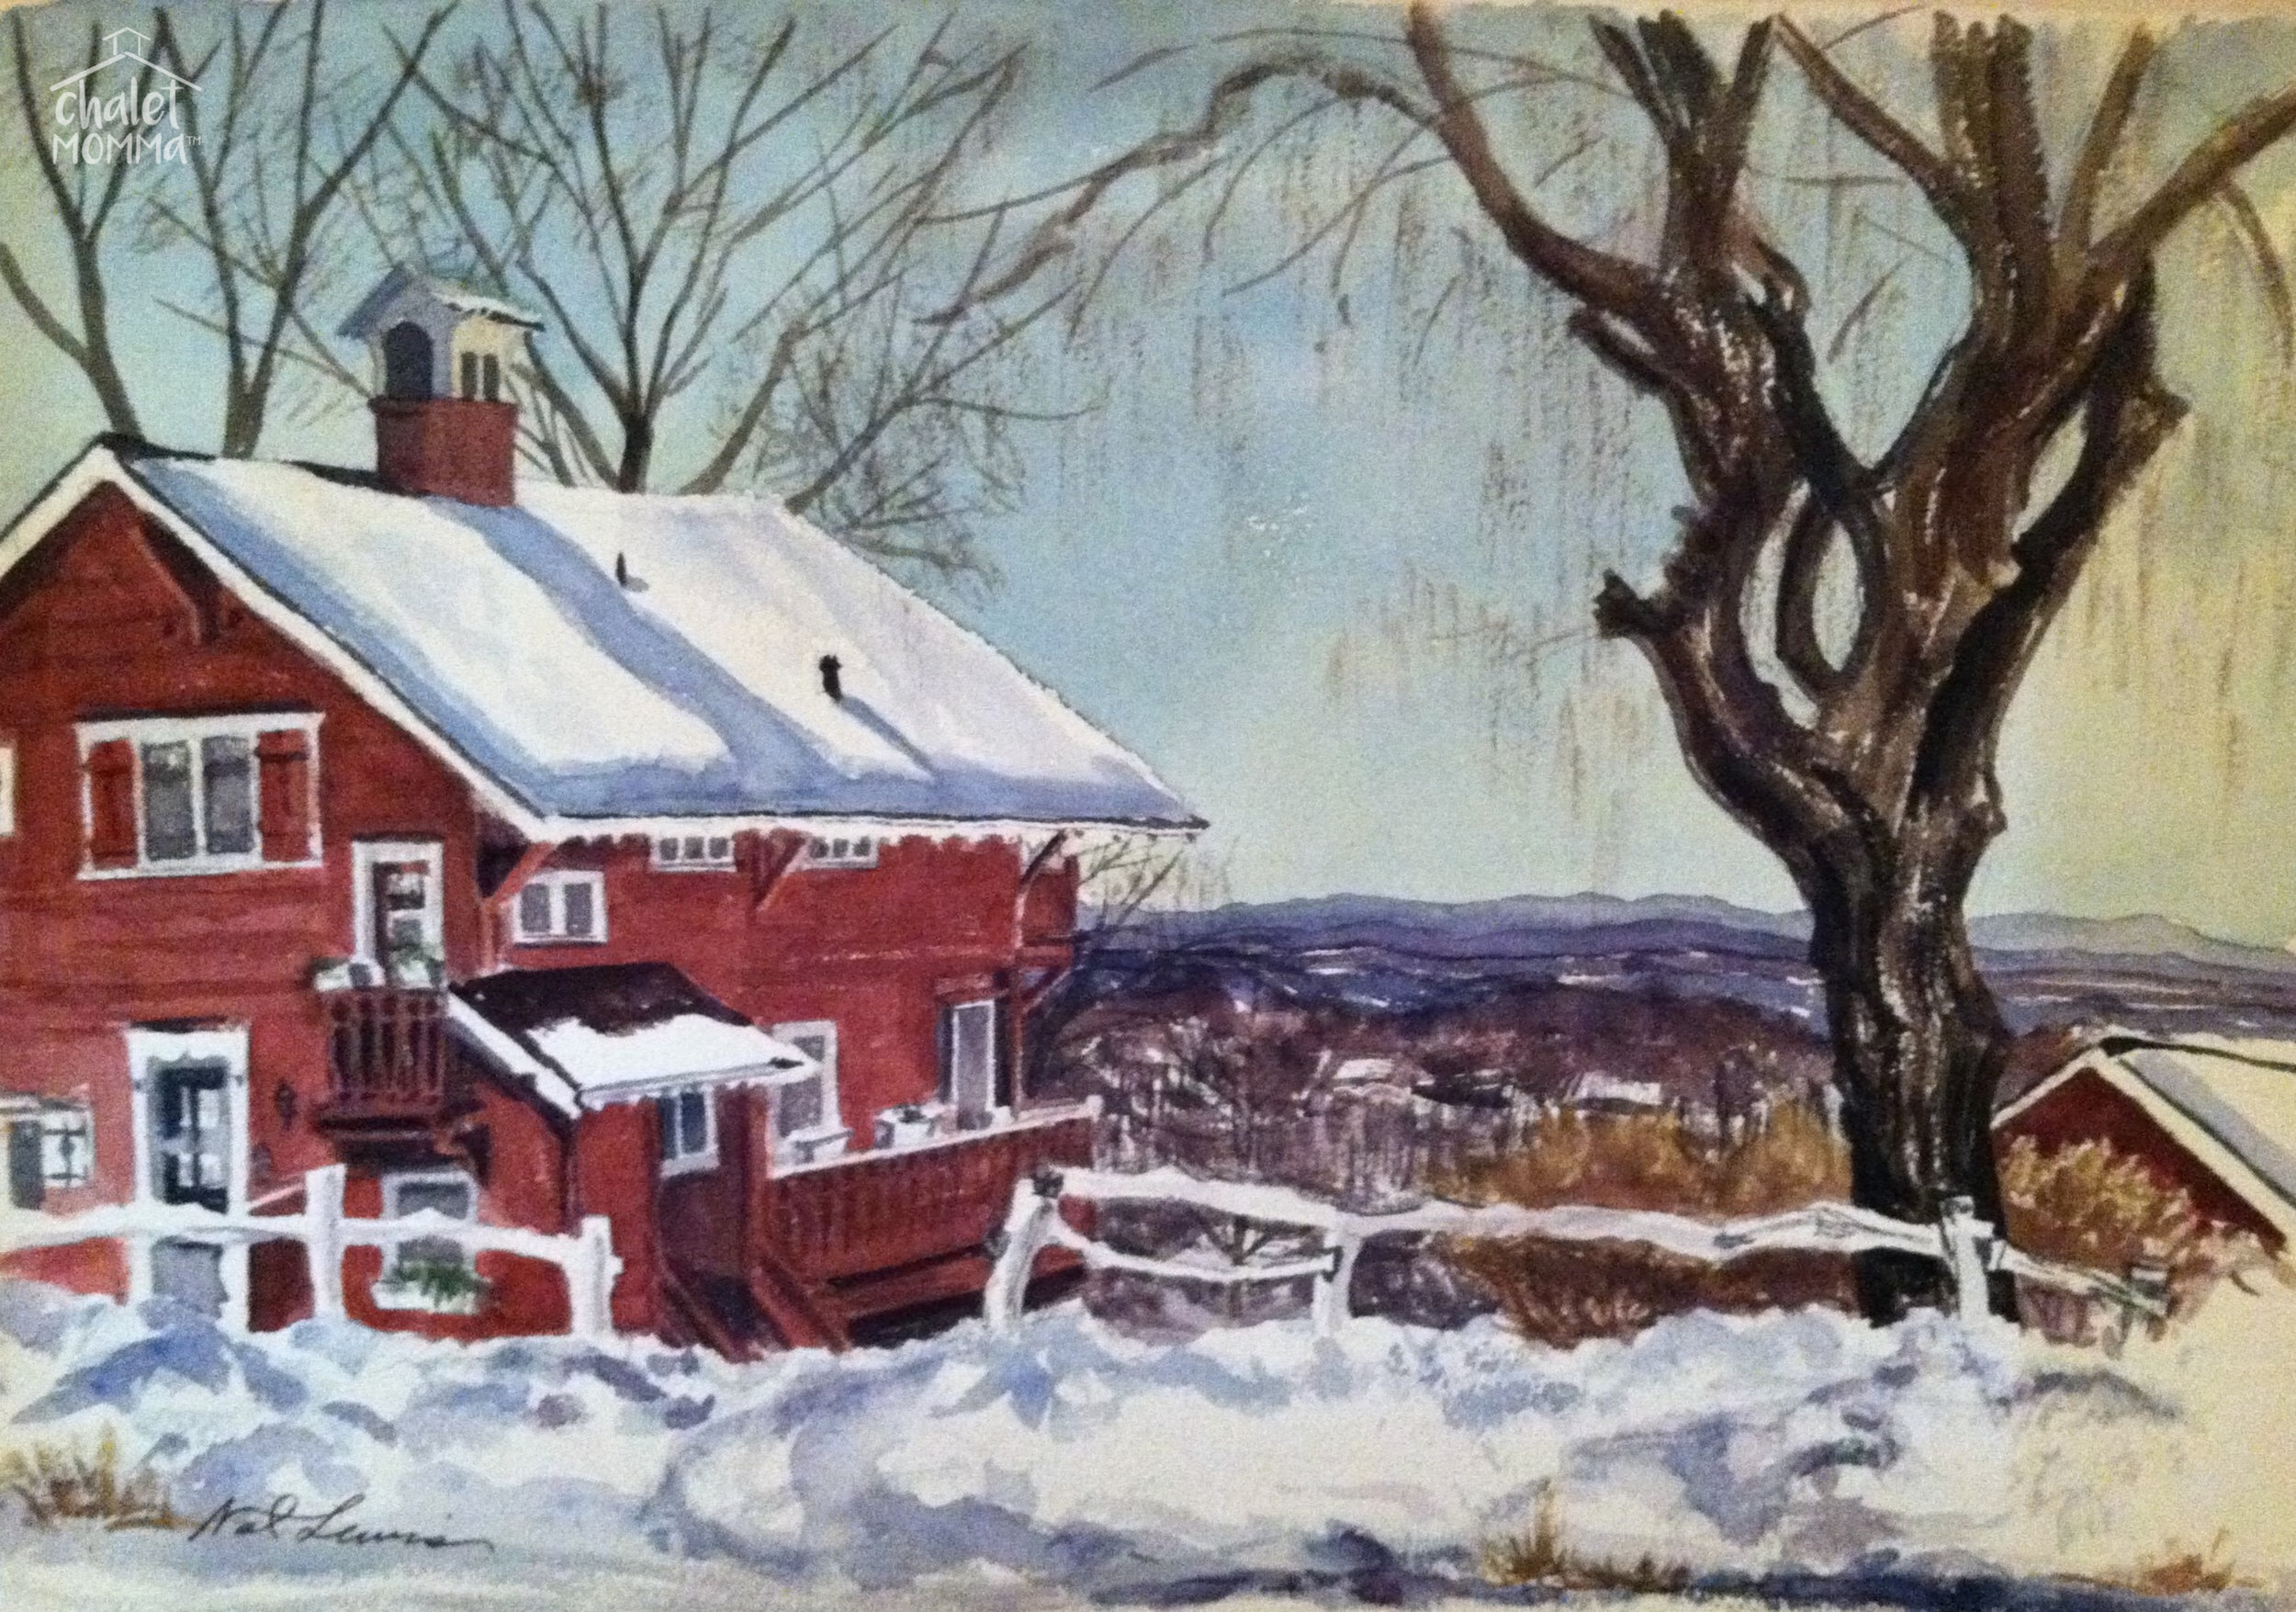 This amazing 1968 watercolor by Nat Lewis was presented to the King family, by the daughter of a former owner.